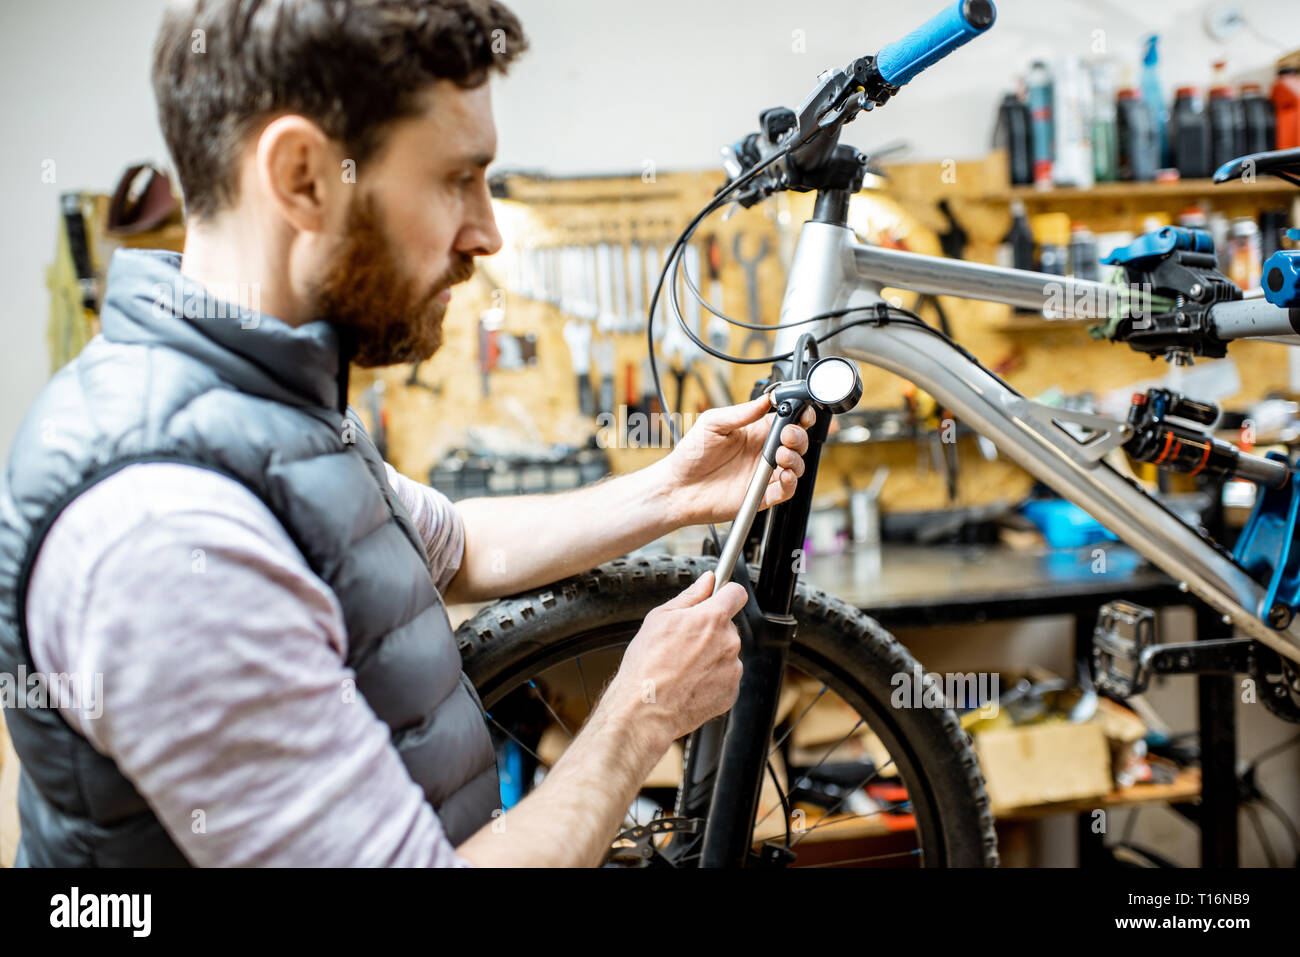 Repairman serving a bicycle, checking a air pressure in the pneumatic absorber of a fork in the workshop Stock Photo